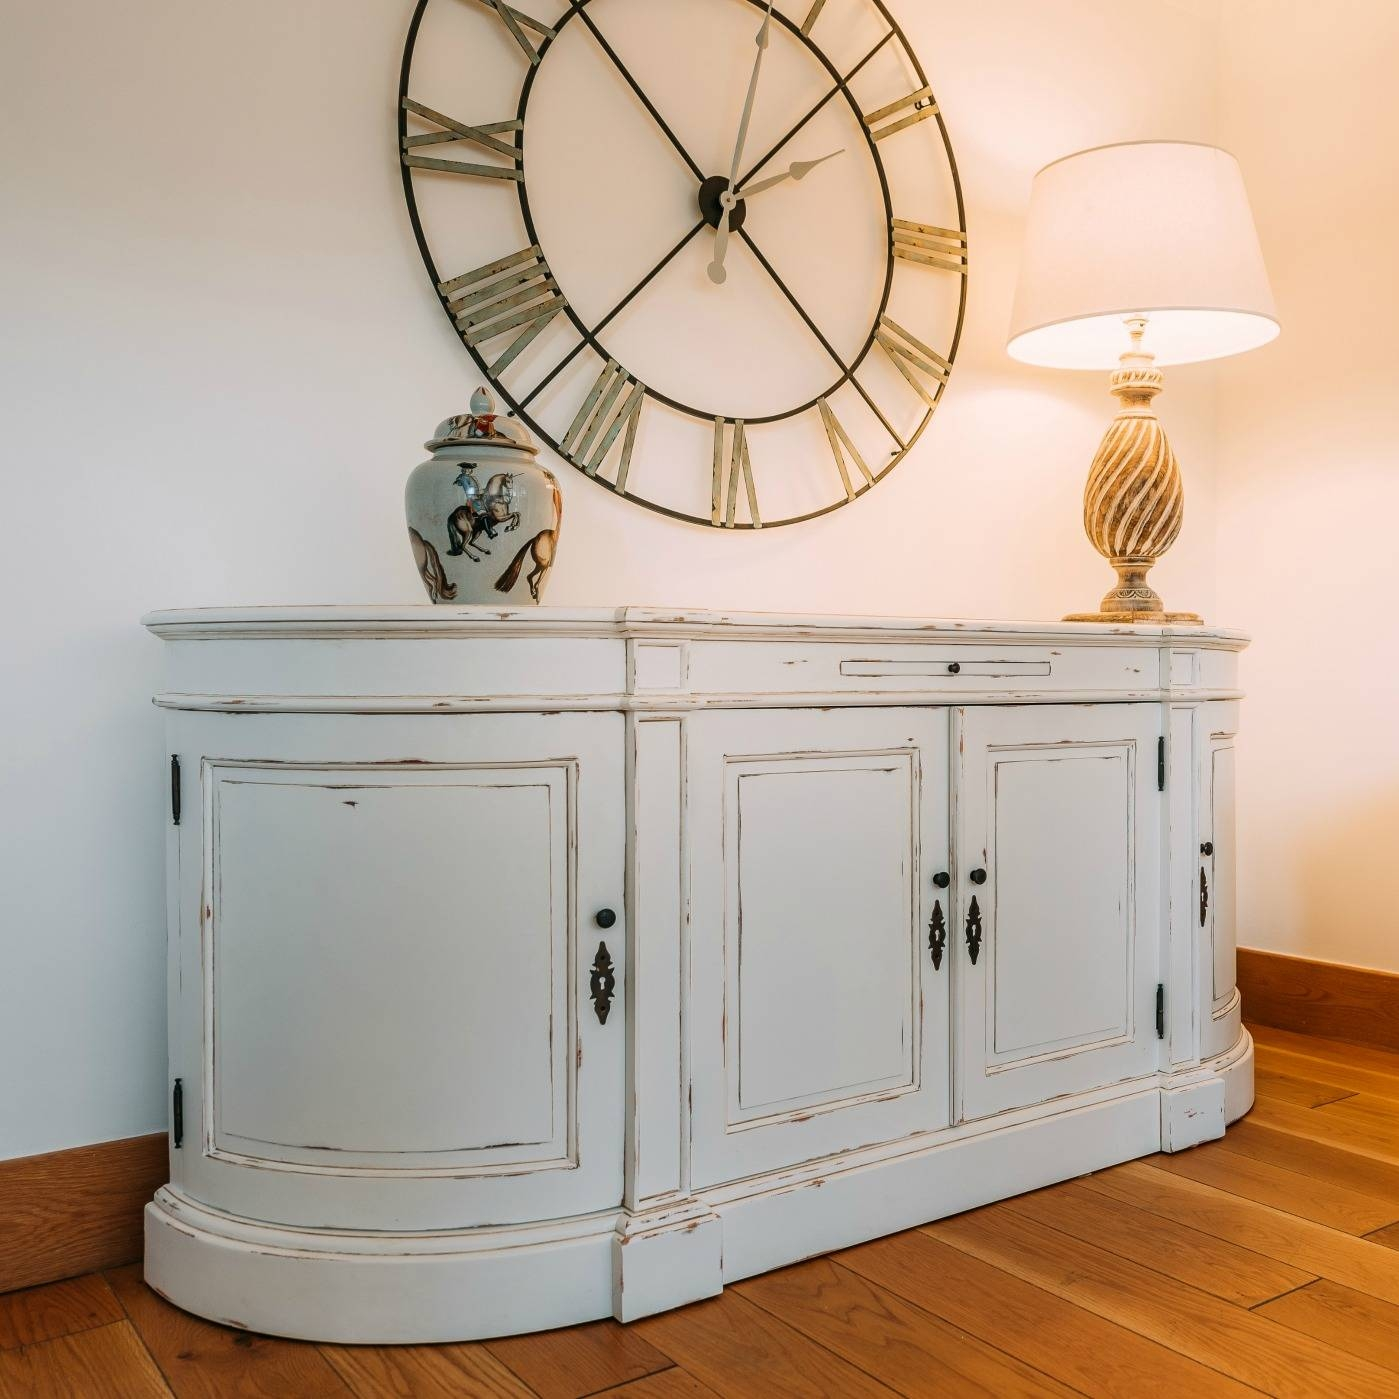 Aged French Distressed White Large Sideboard Furniture – La Maison Within Large White Sideboards (#1 of 15)